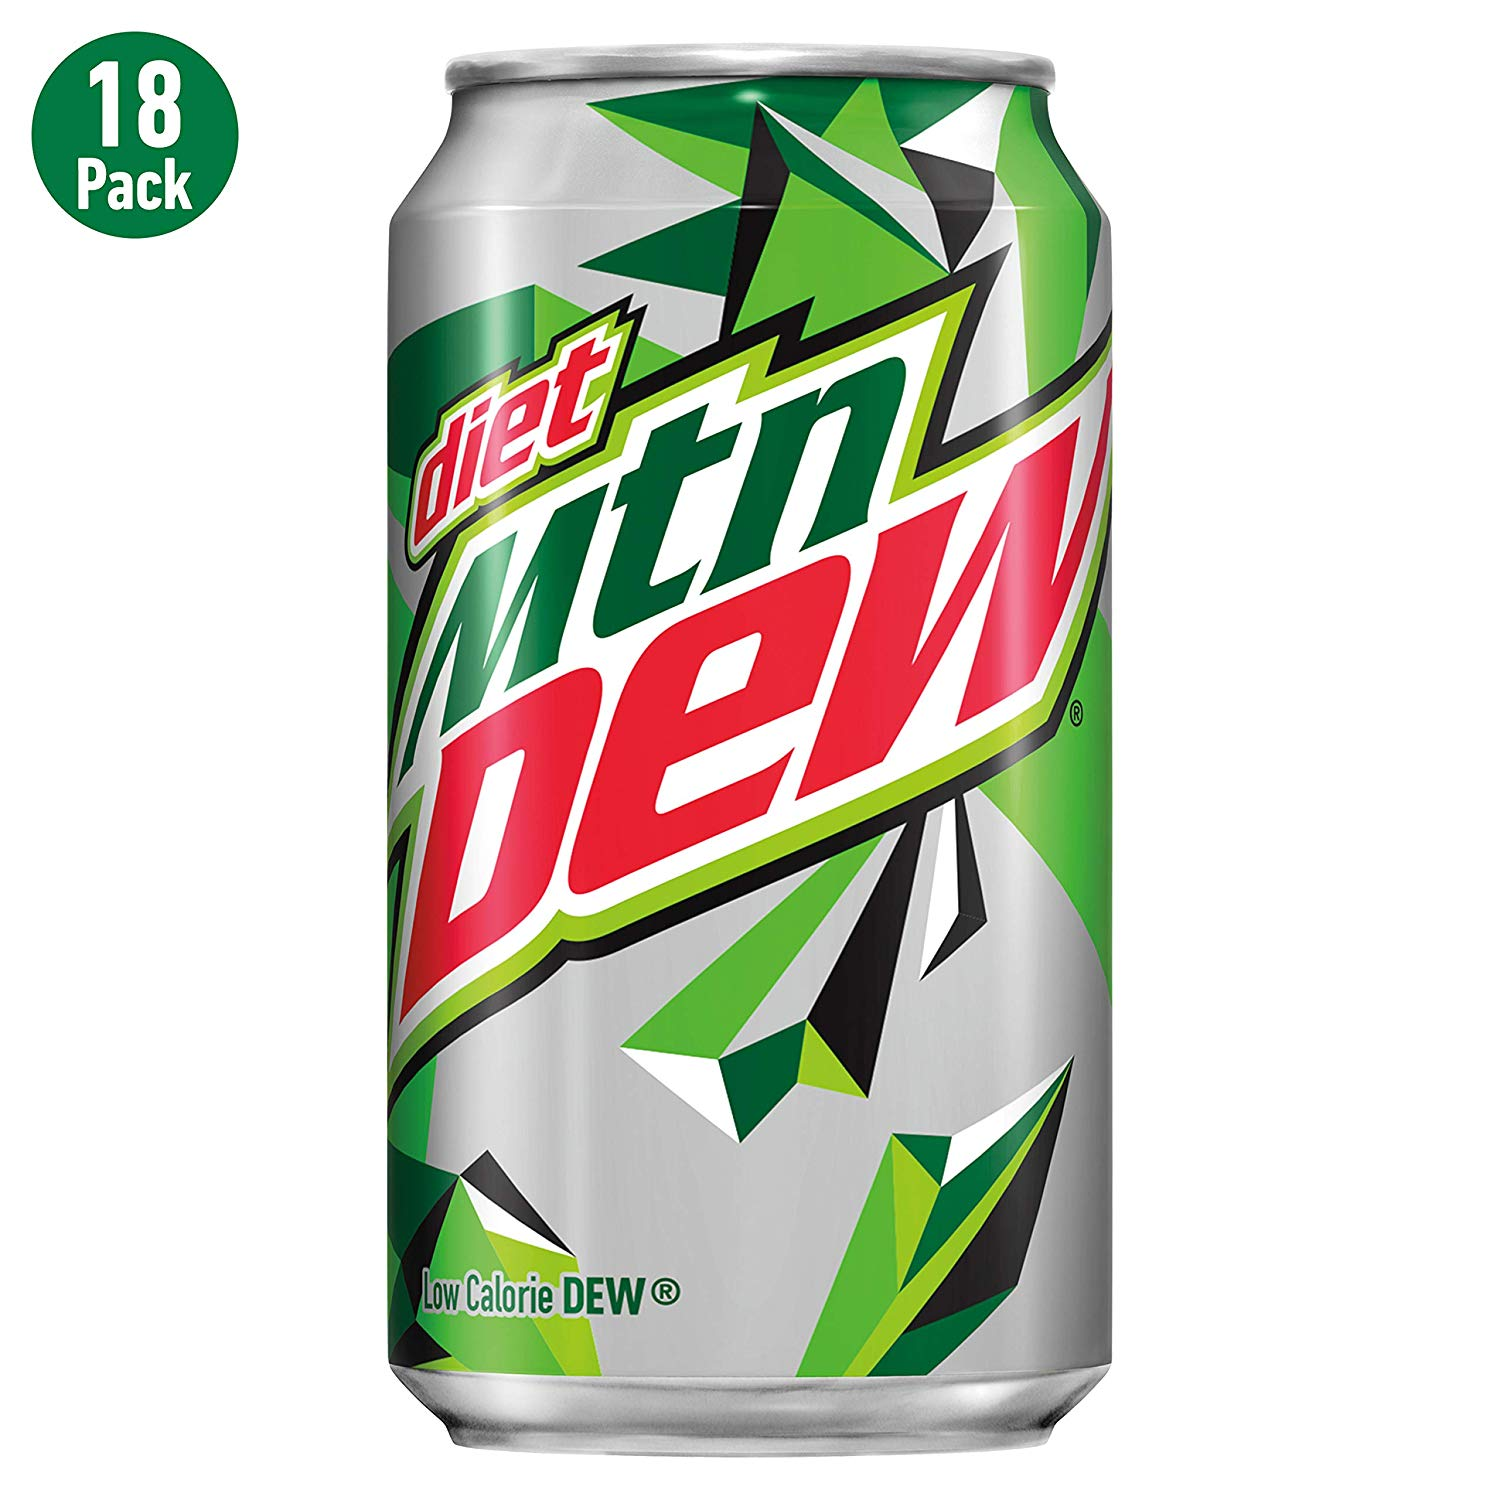 Diet Mtn Dew, 12 Fl Oz Cans, Pack of 18 (Packaging May Vary).